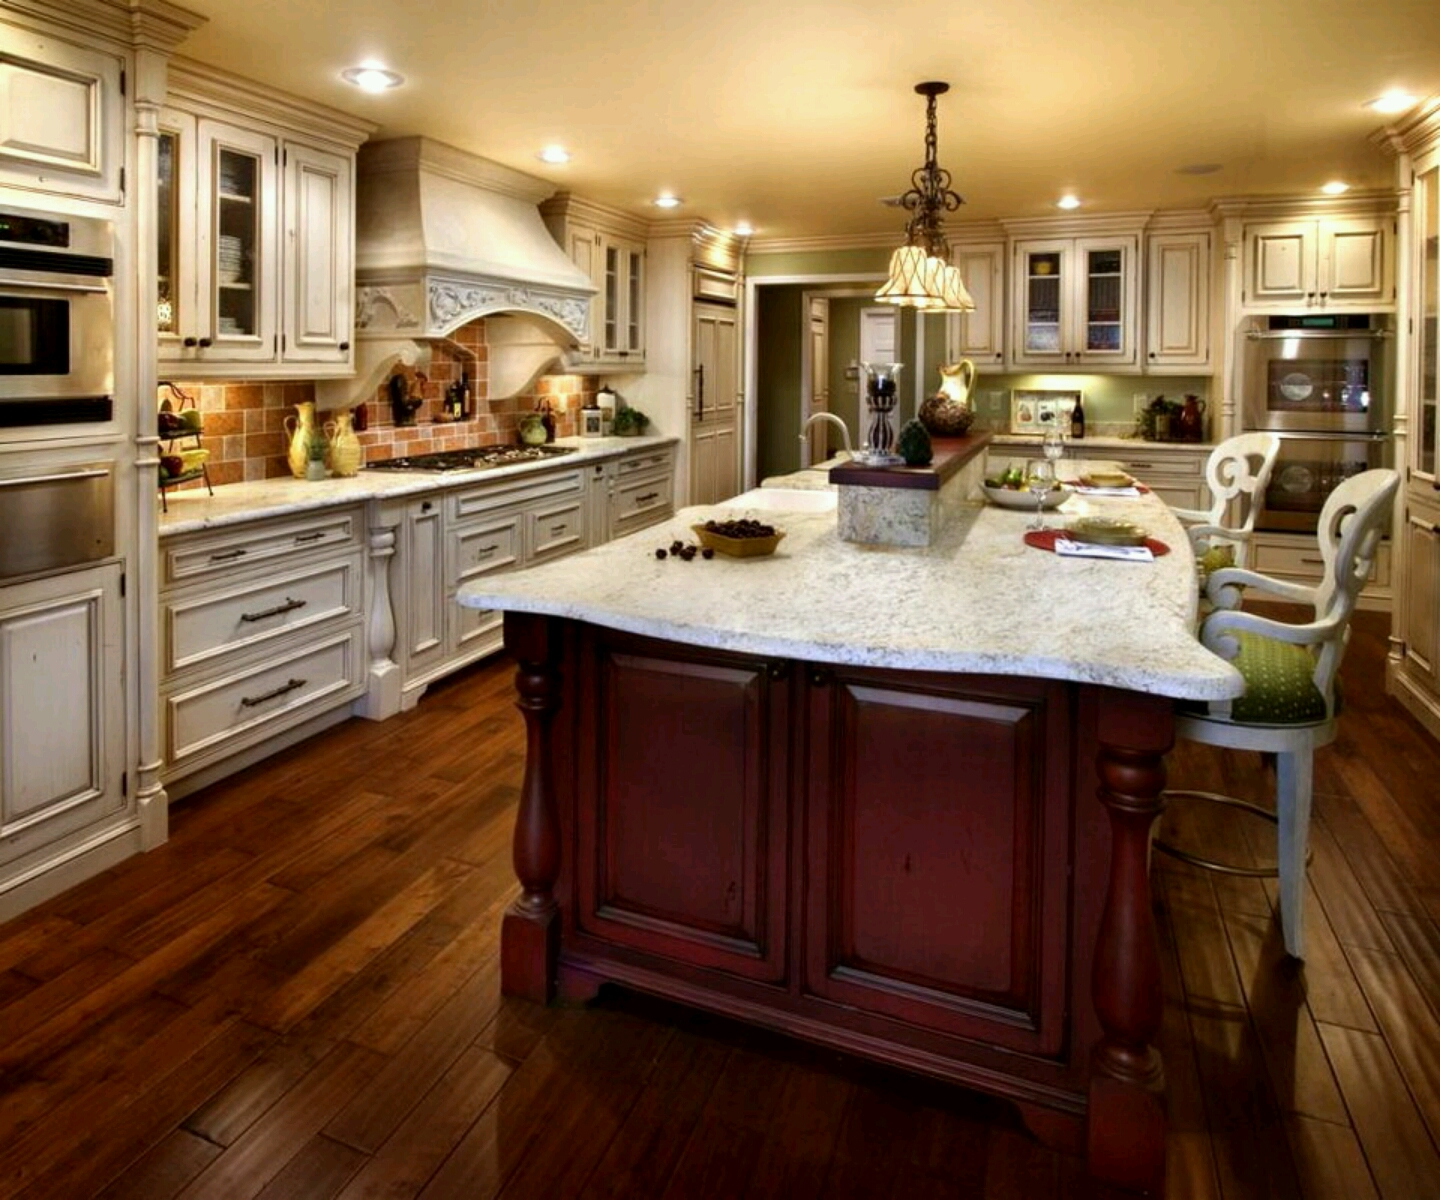 Luxury kitchen modern kitchen cabinets designs for Classic floor designs